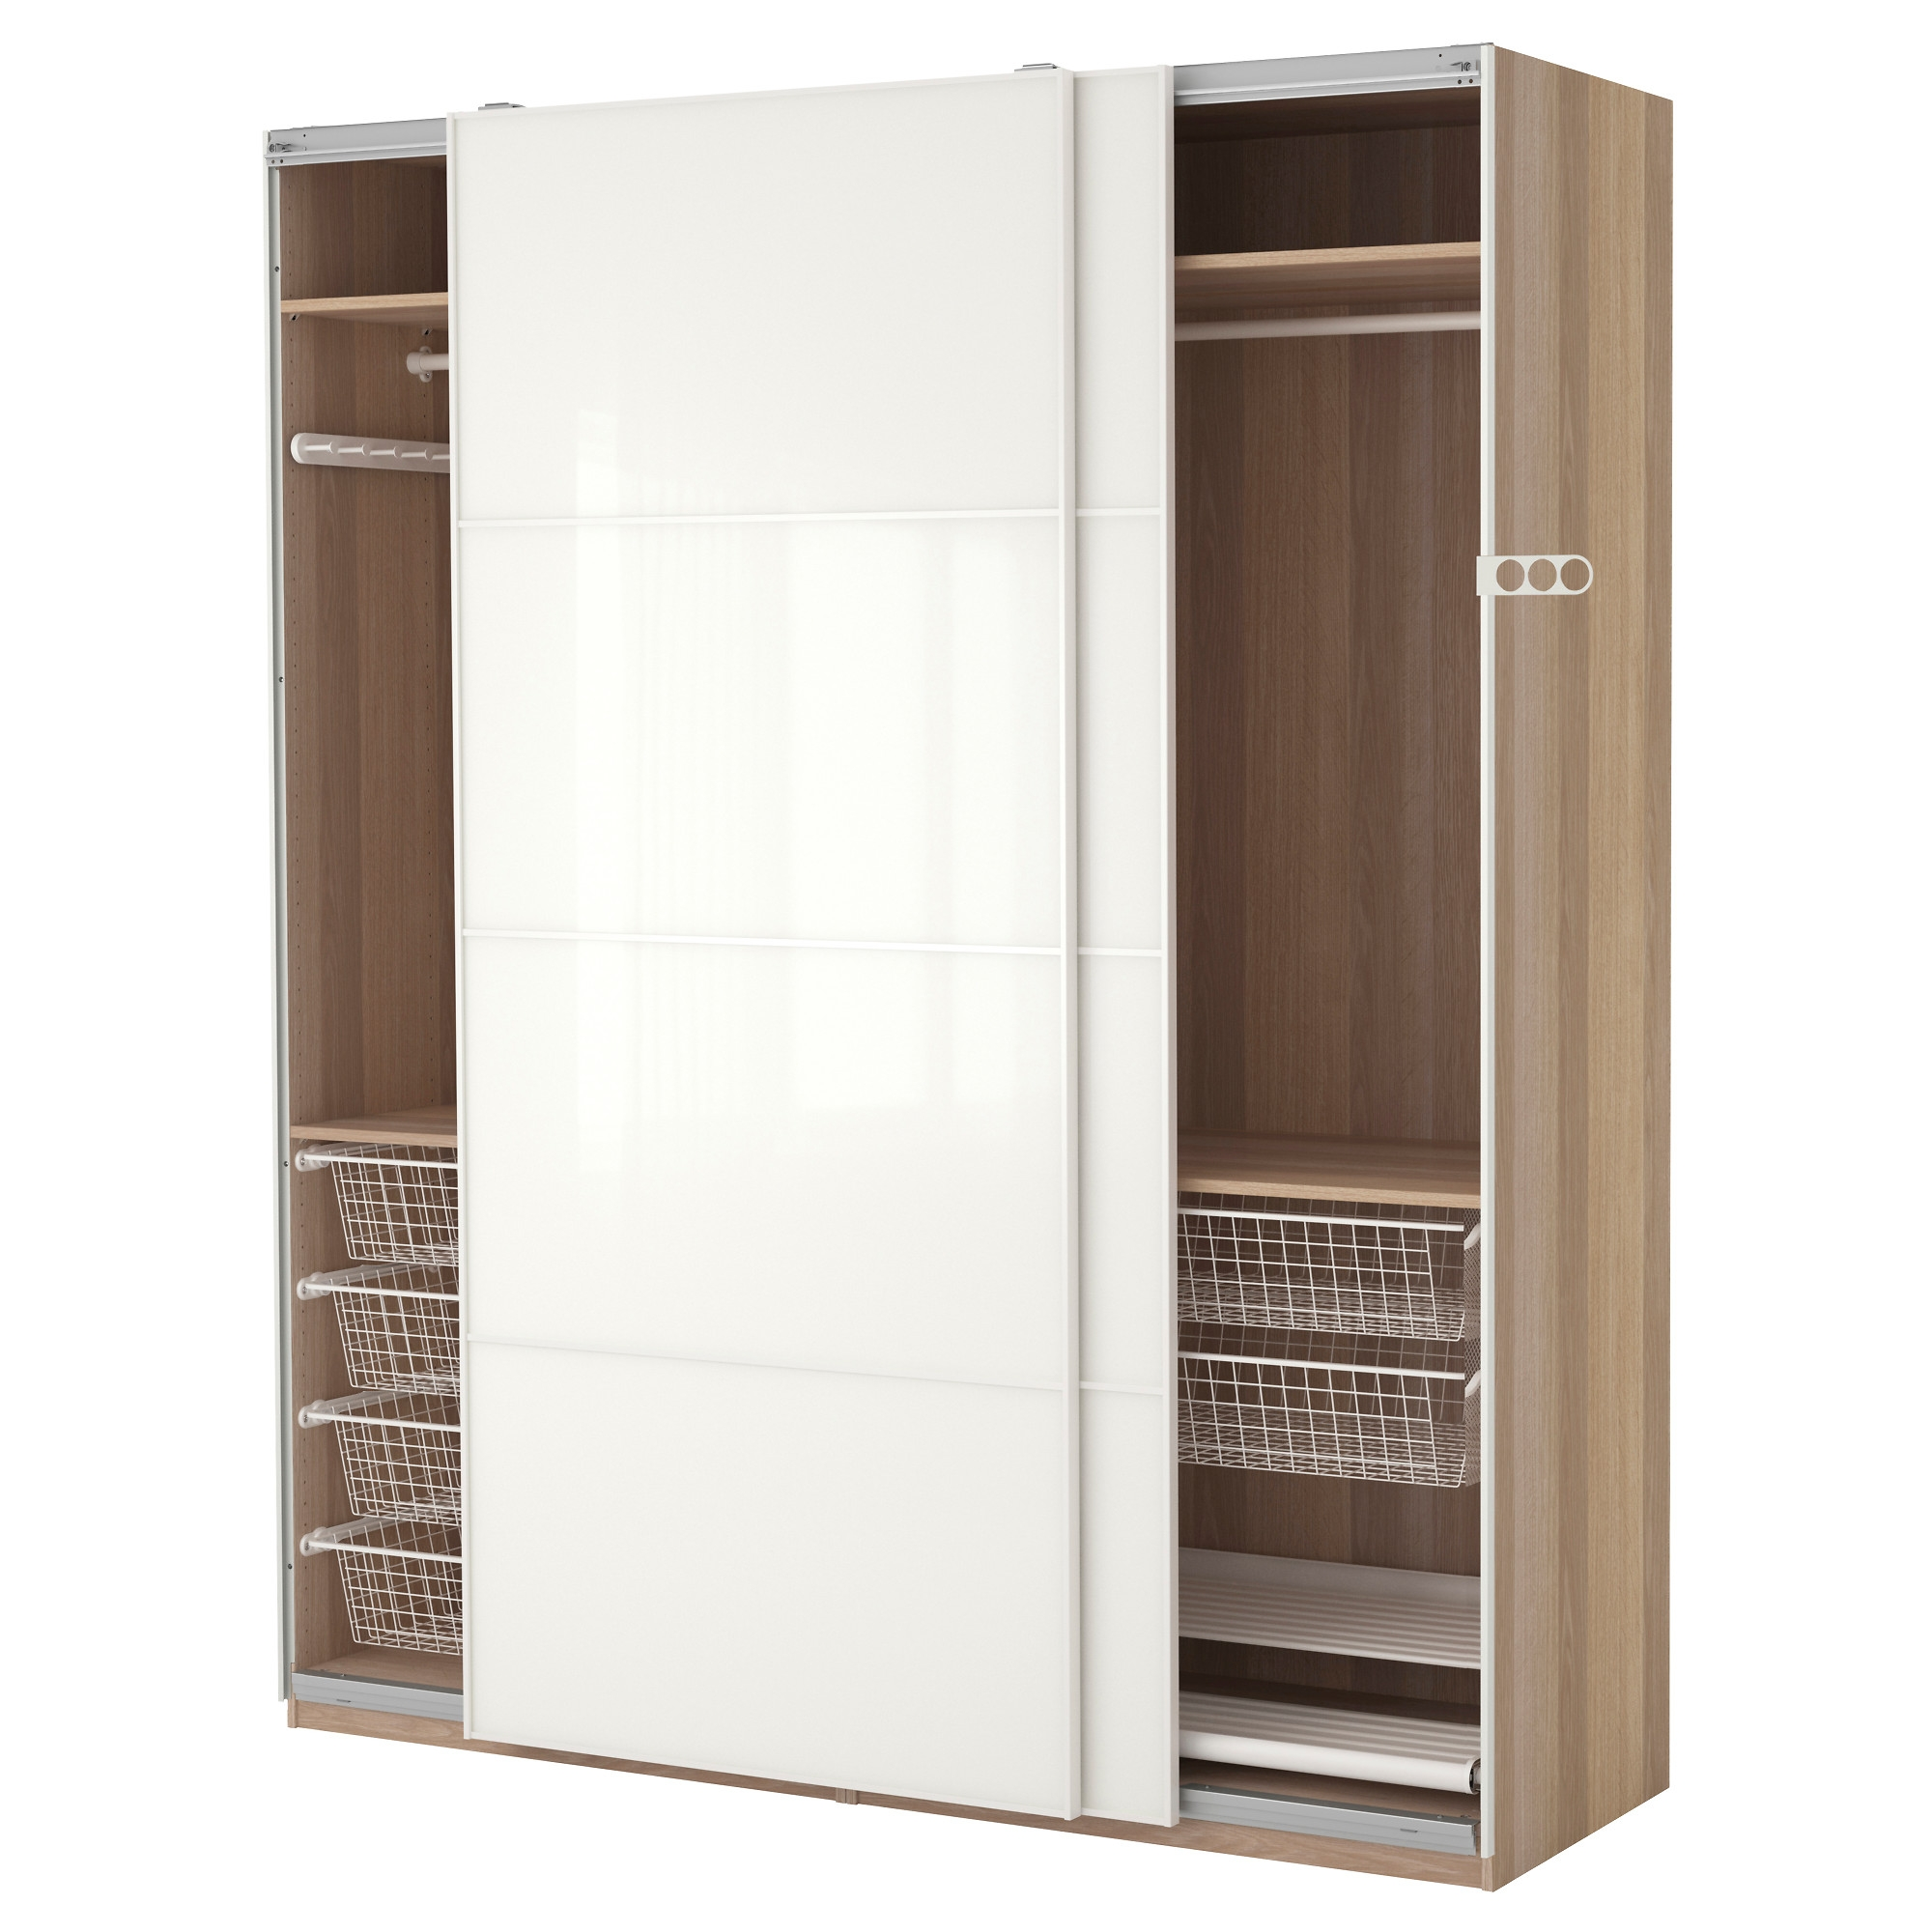 Pax System Combinations With Doors Ikea With Regard To Corner Wardrobe Closet IKEA (View 24 of 25)